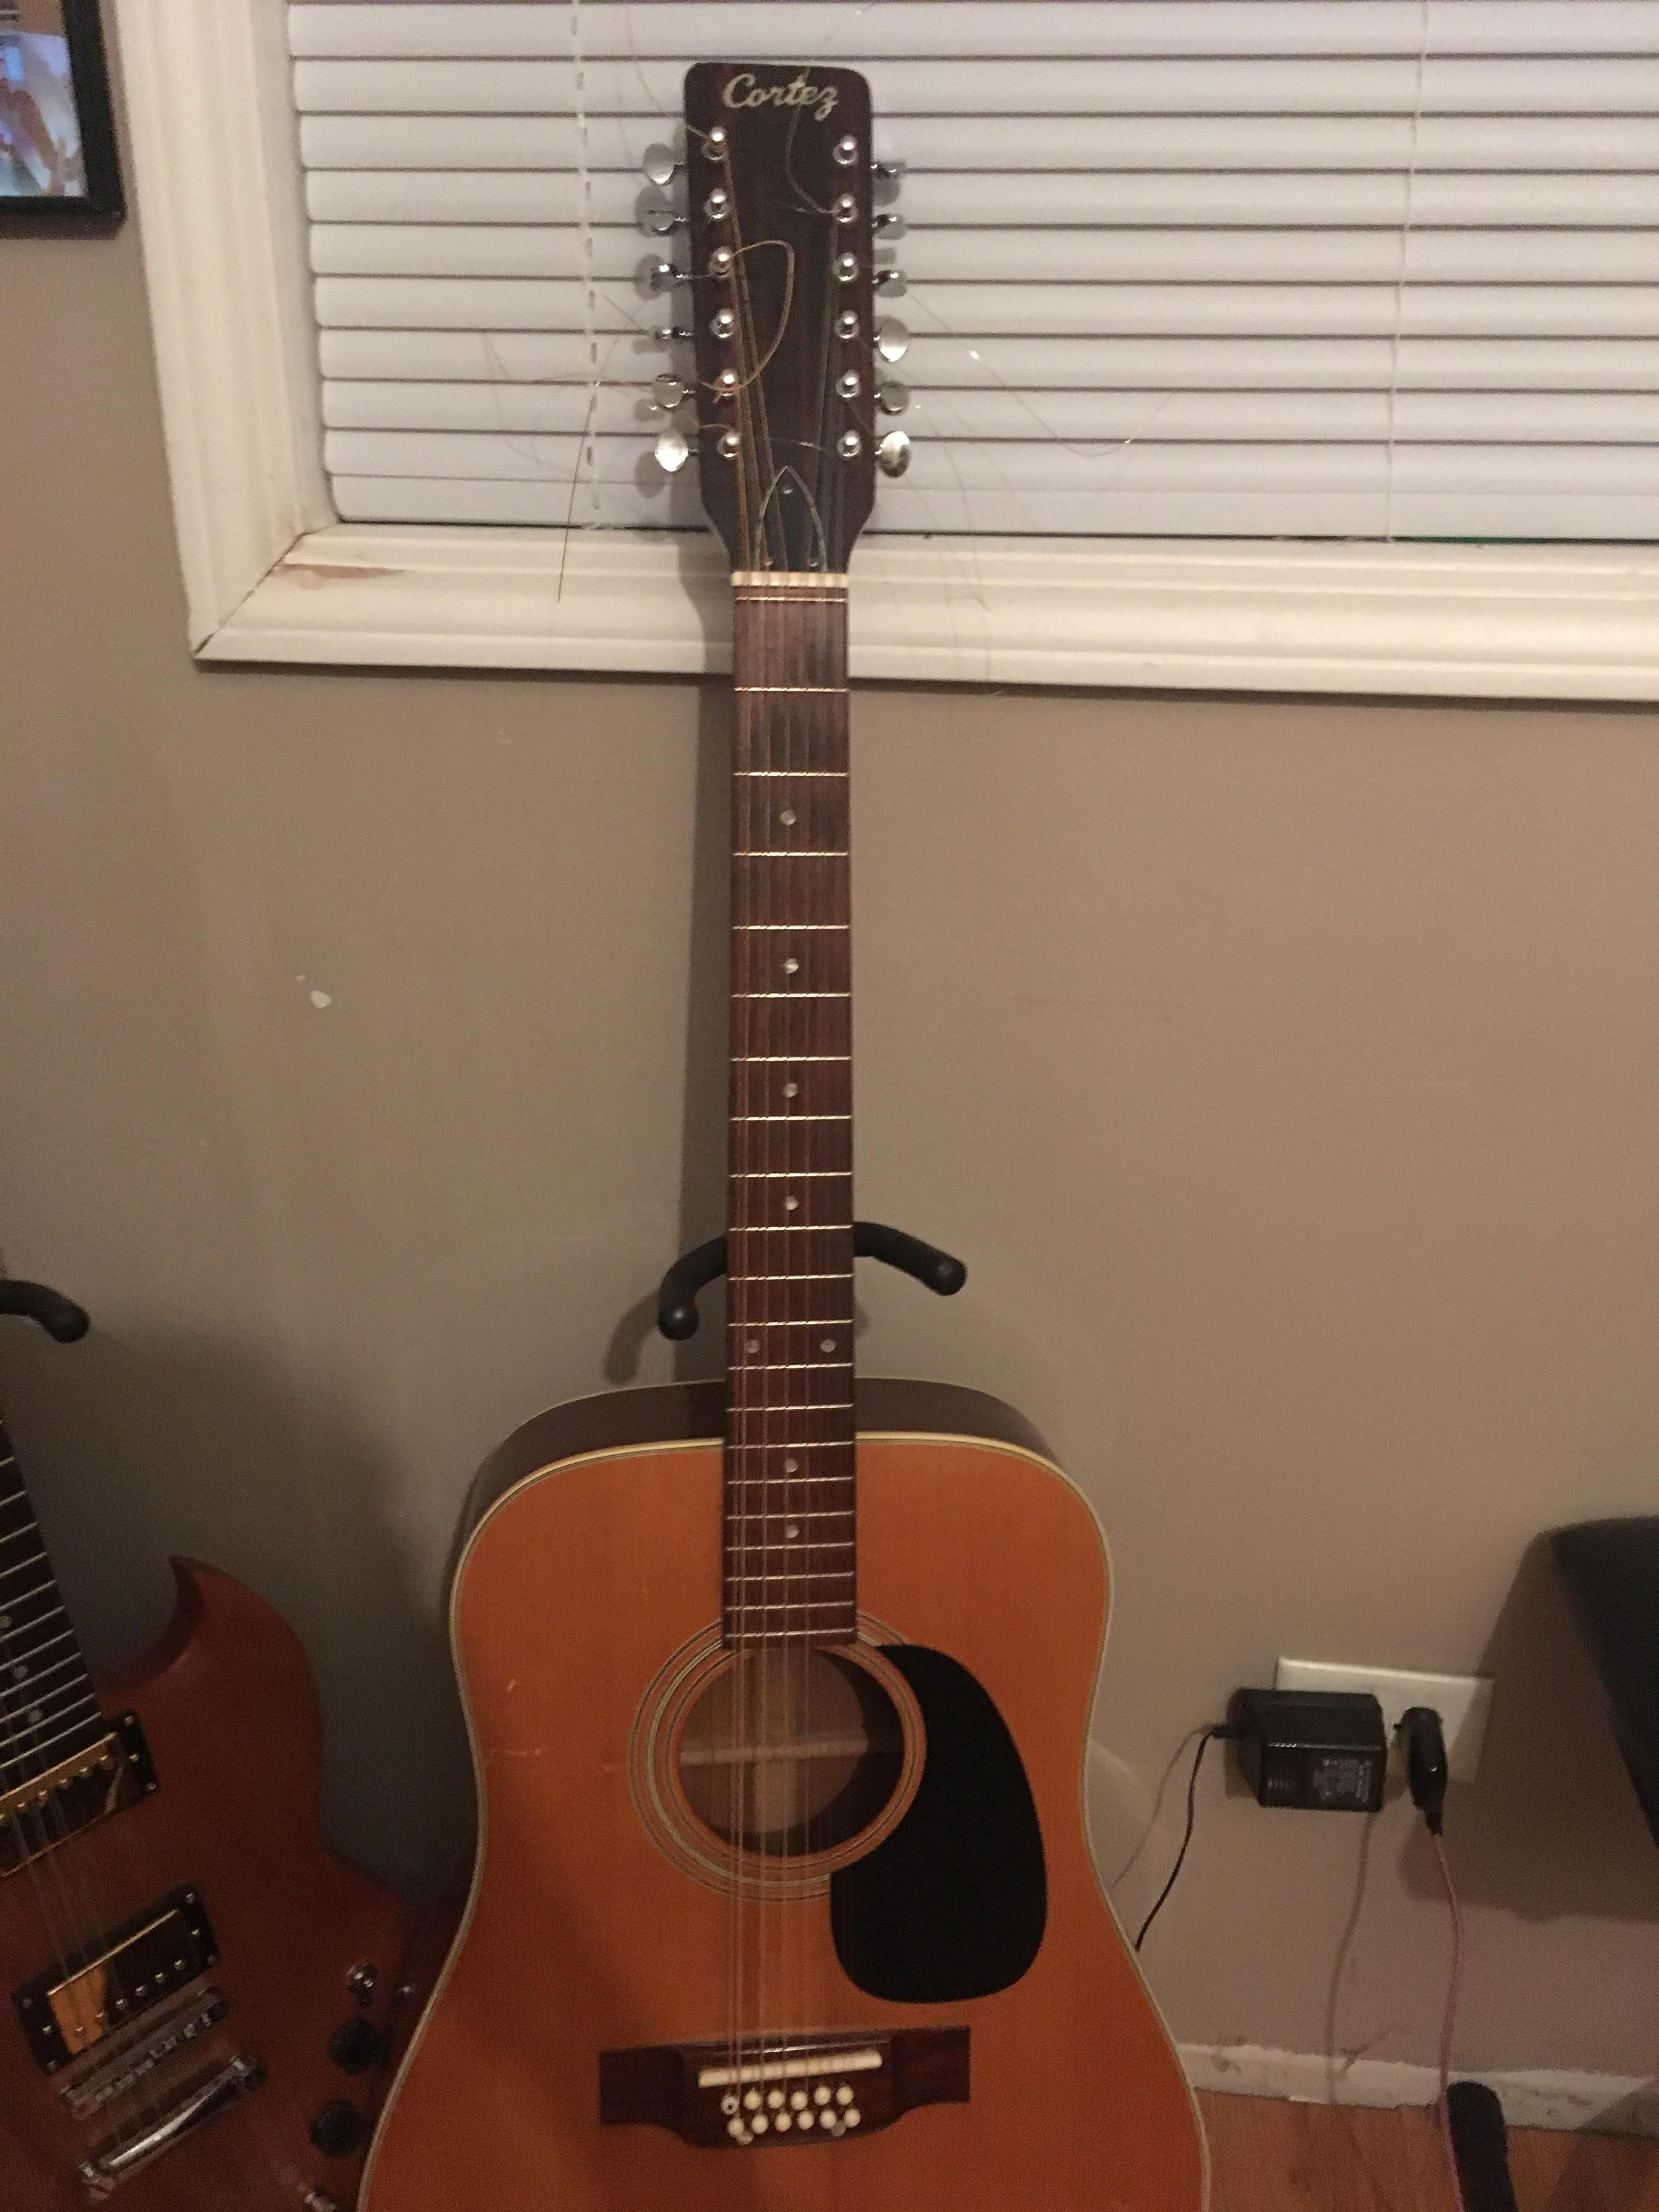 Just paid 20 bucks for this twelve string sounds great   Guitar